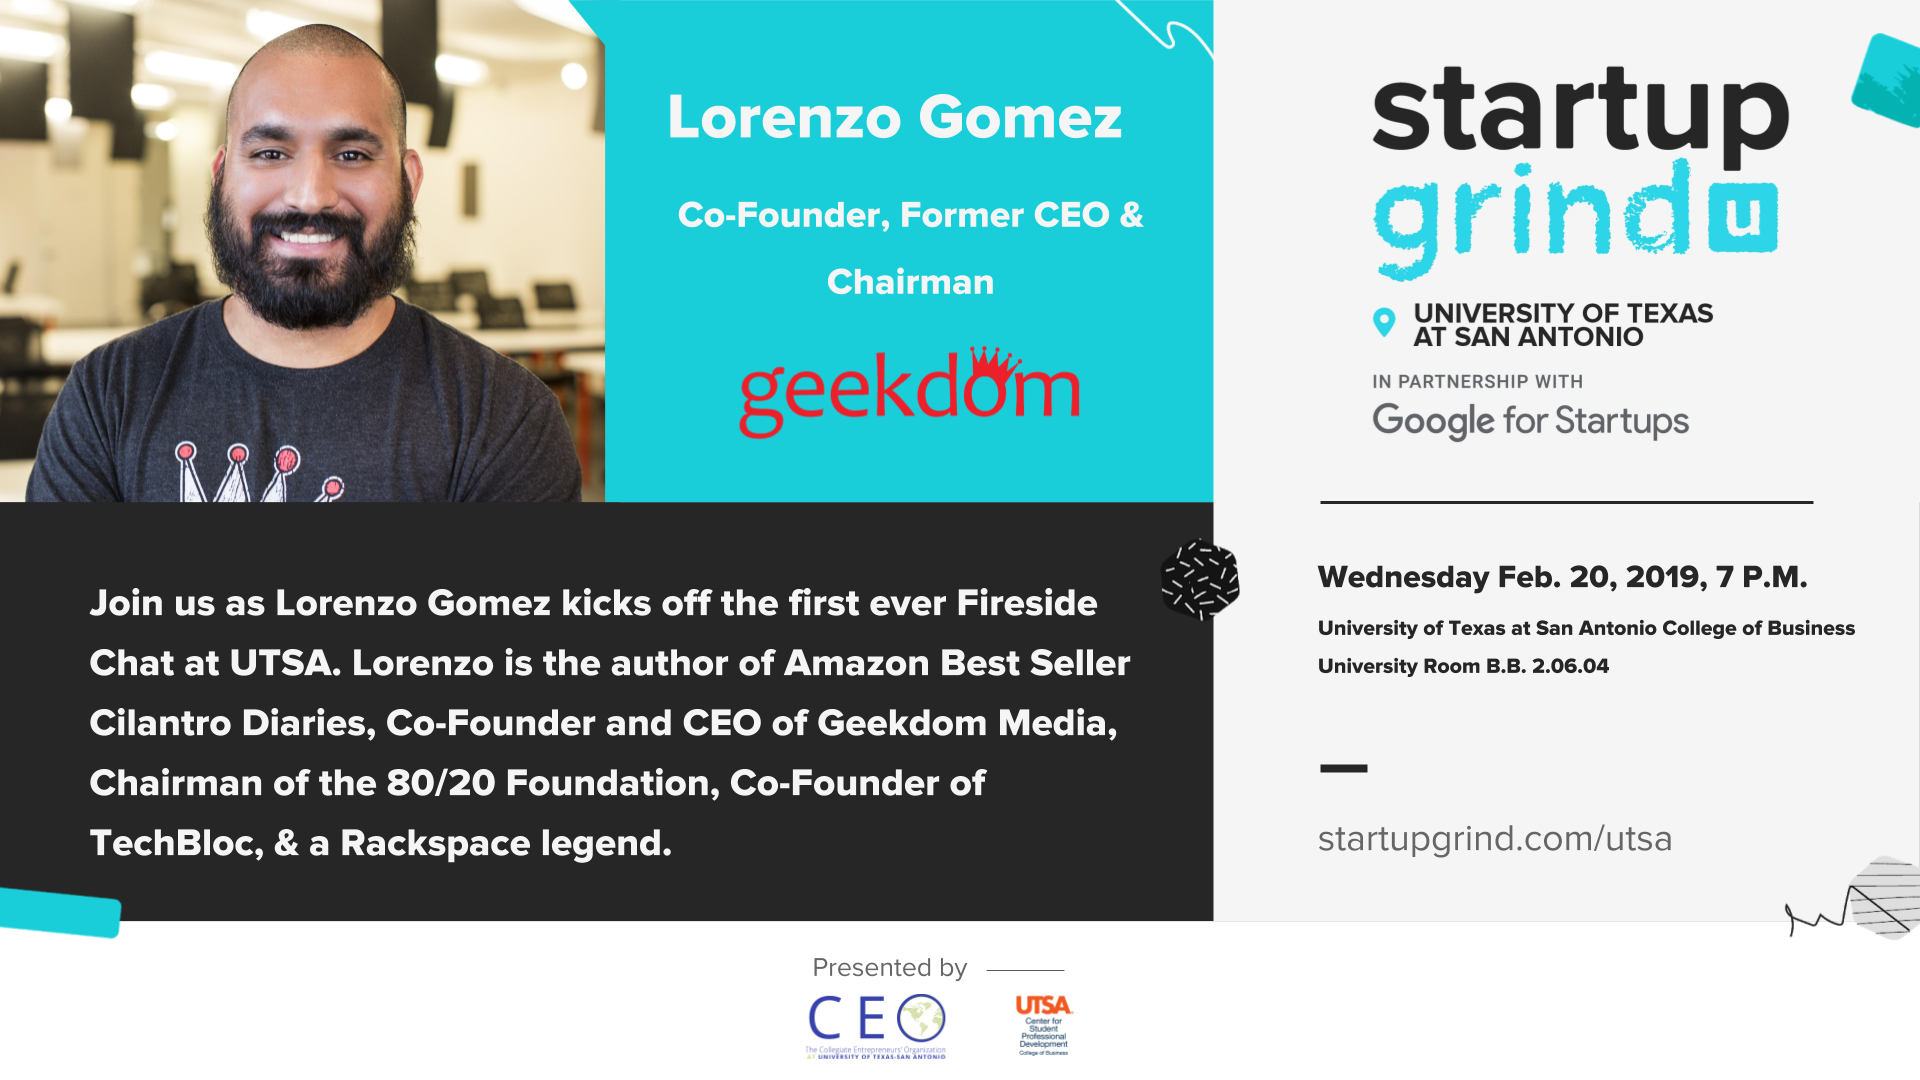 UTSA Startup Grind Chapter Launches with Lorenzo Gomez as Guest Speaker